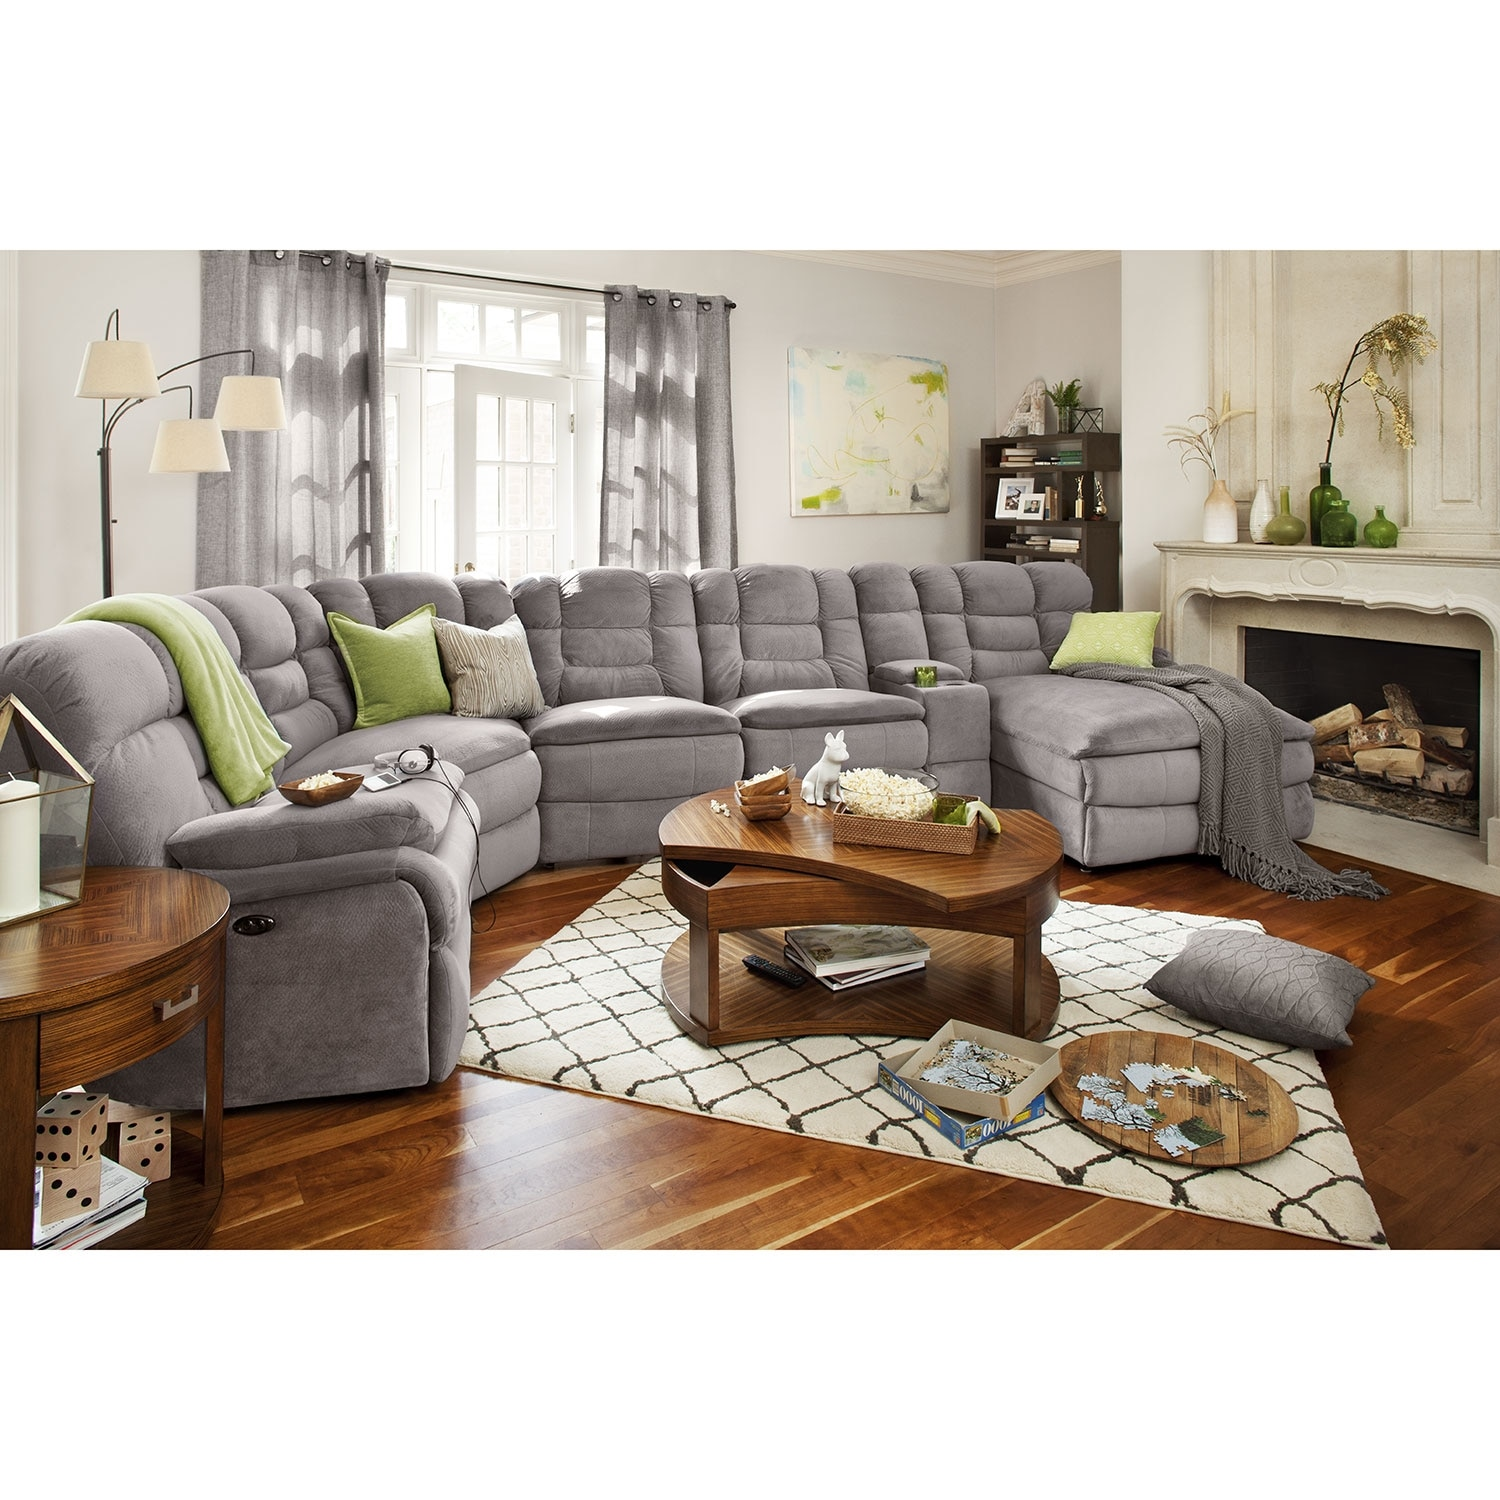 Big softie ii 6 pc power reclining sectional value city for 6 pc sectional living room